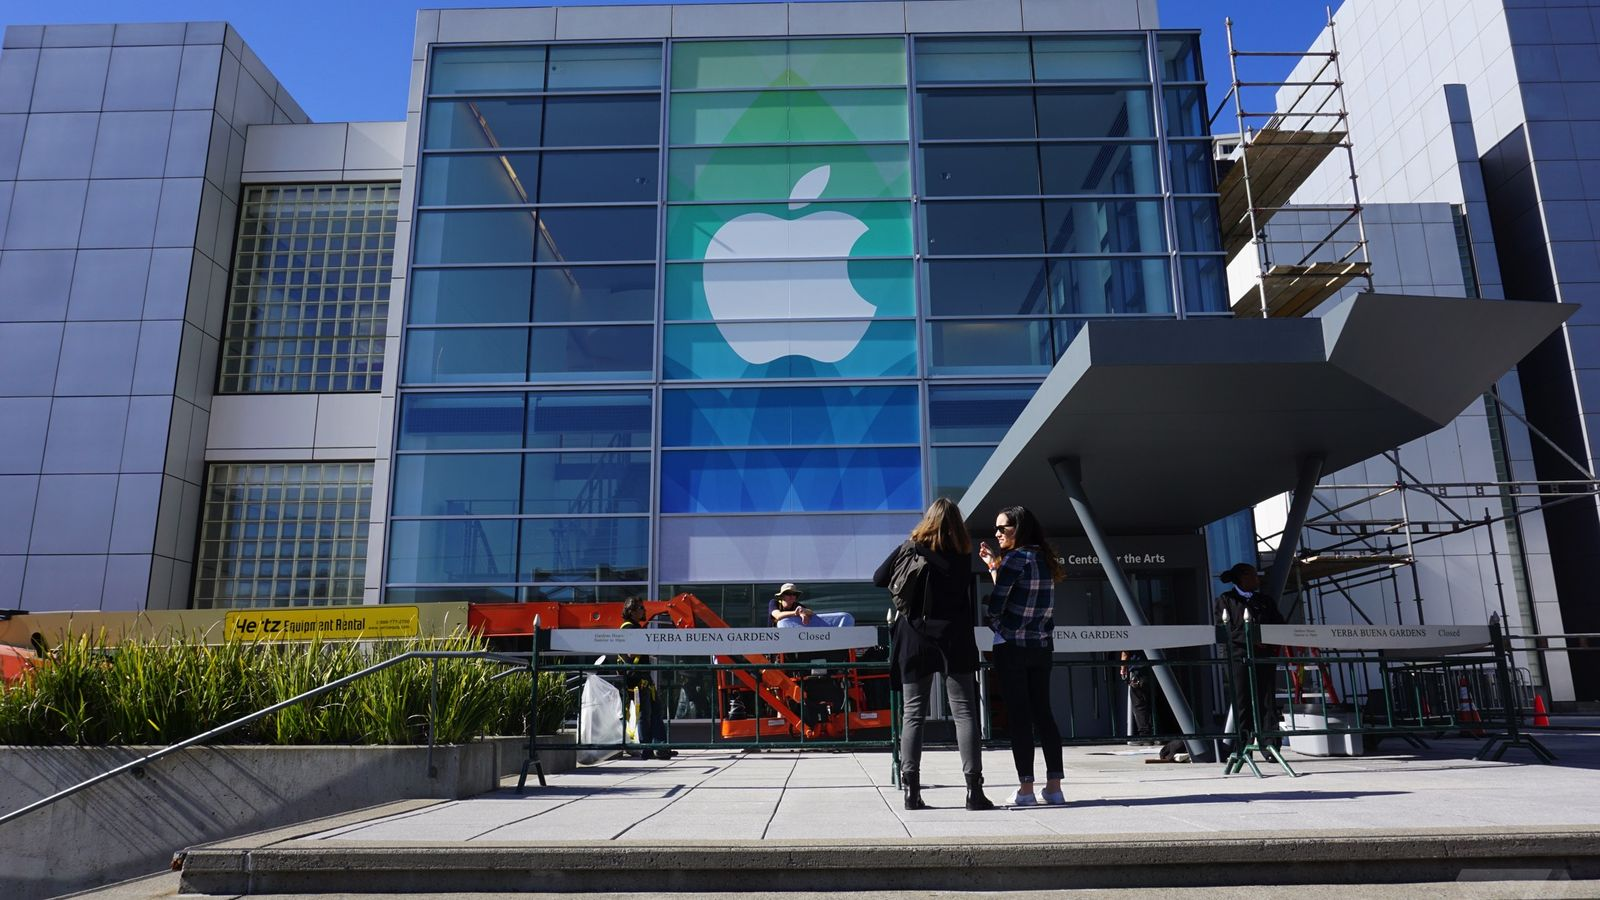 Apple banners are going up at the Yerba Buena Center for the Arts in San Francisco ahead of Monday's event. Credit: 9to5Mac